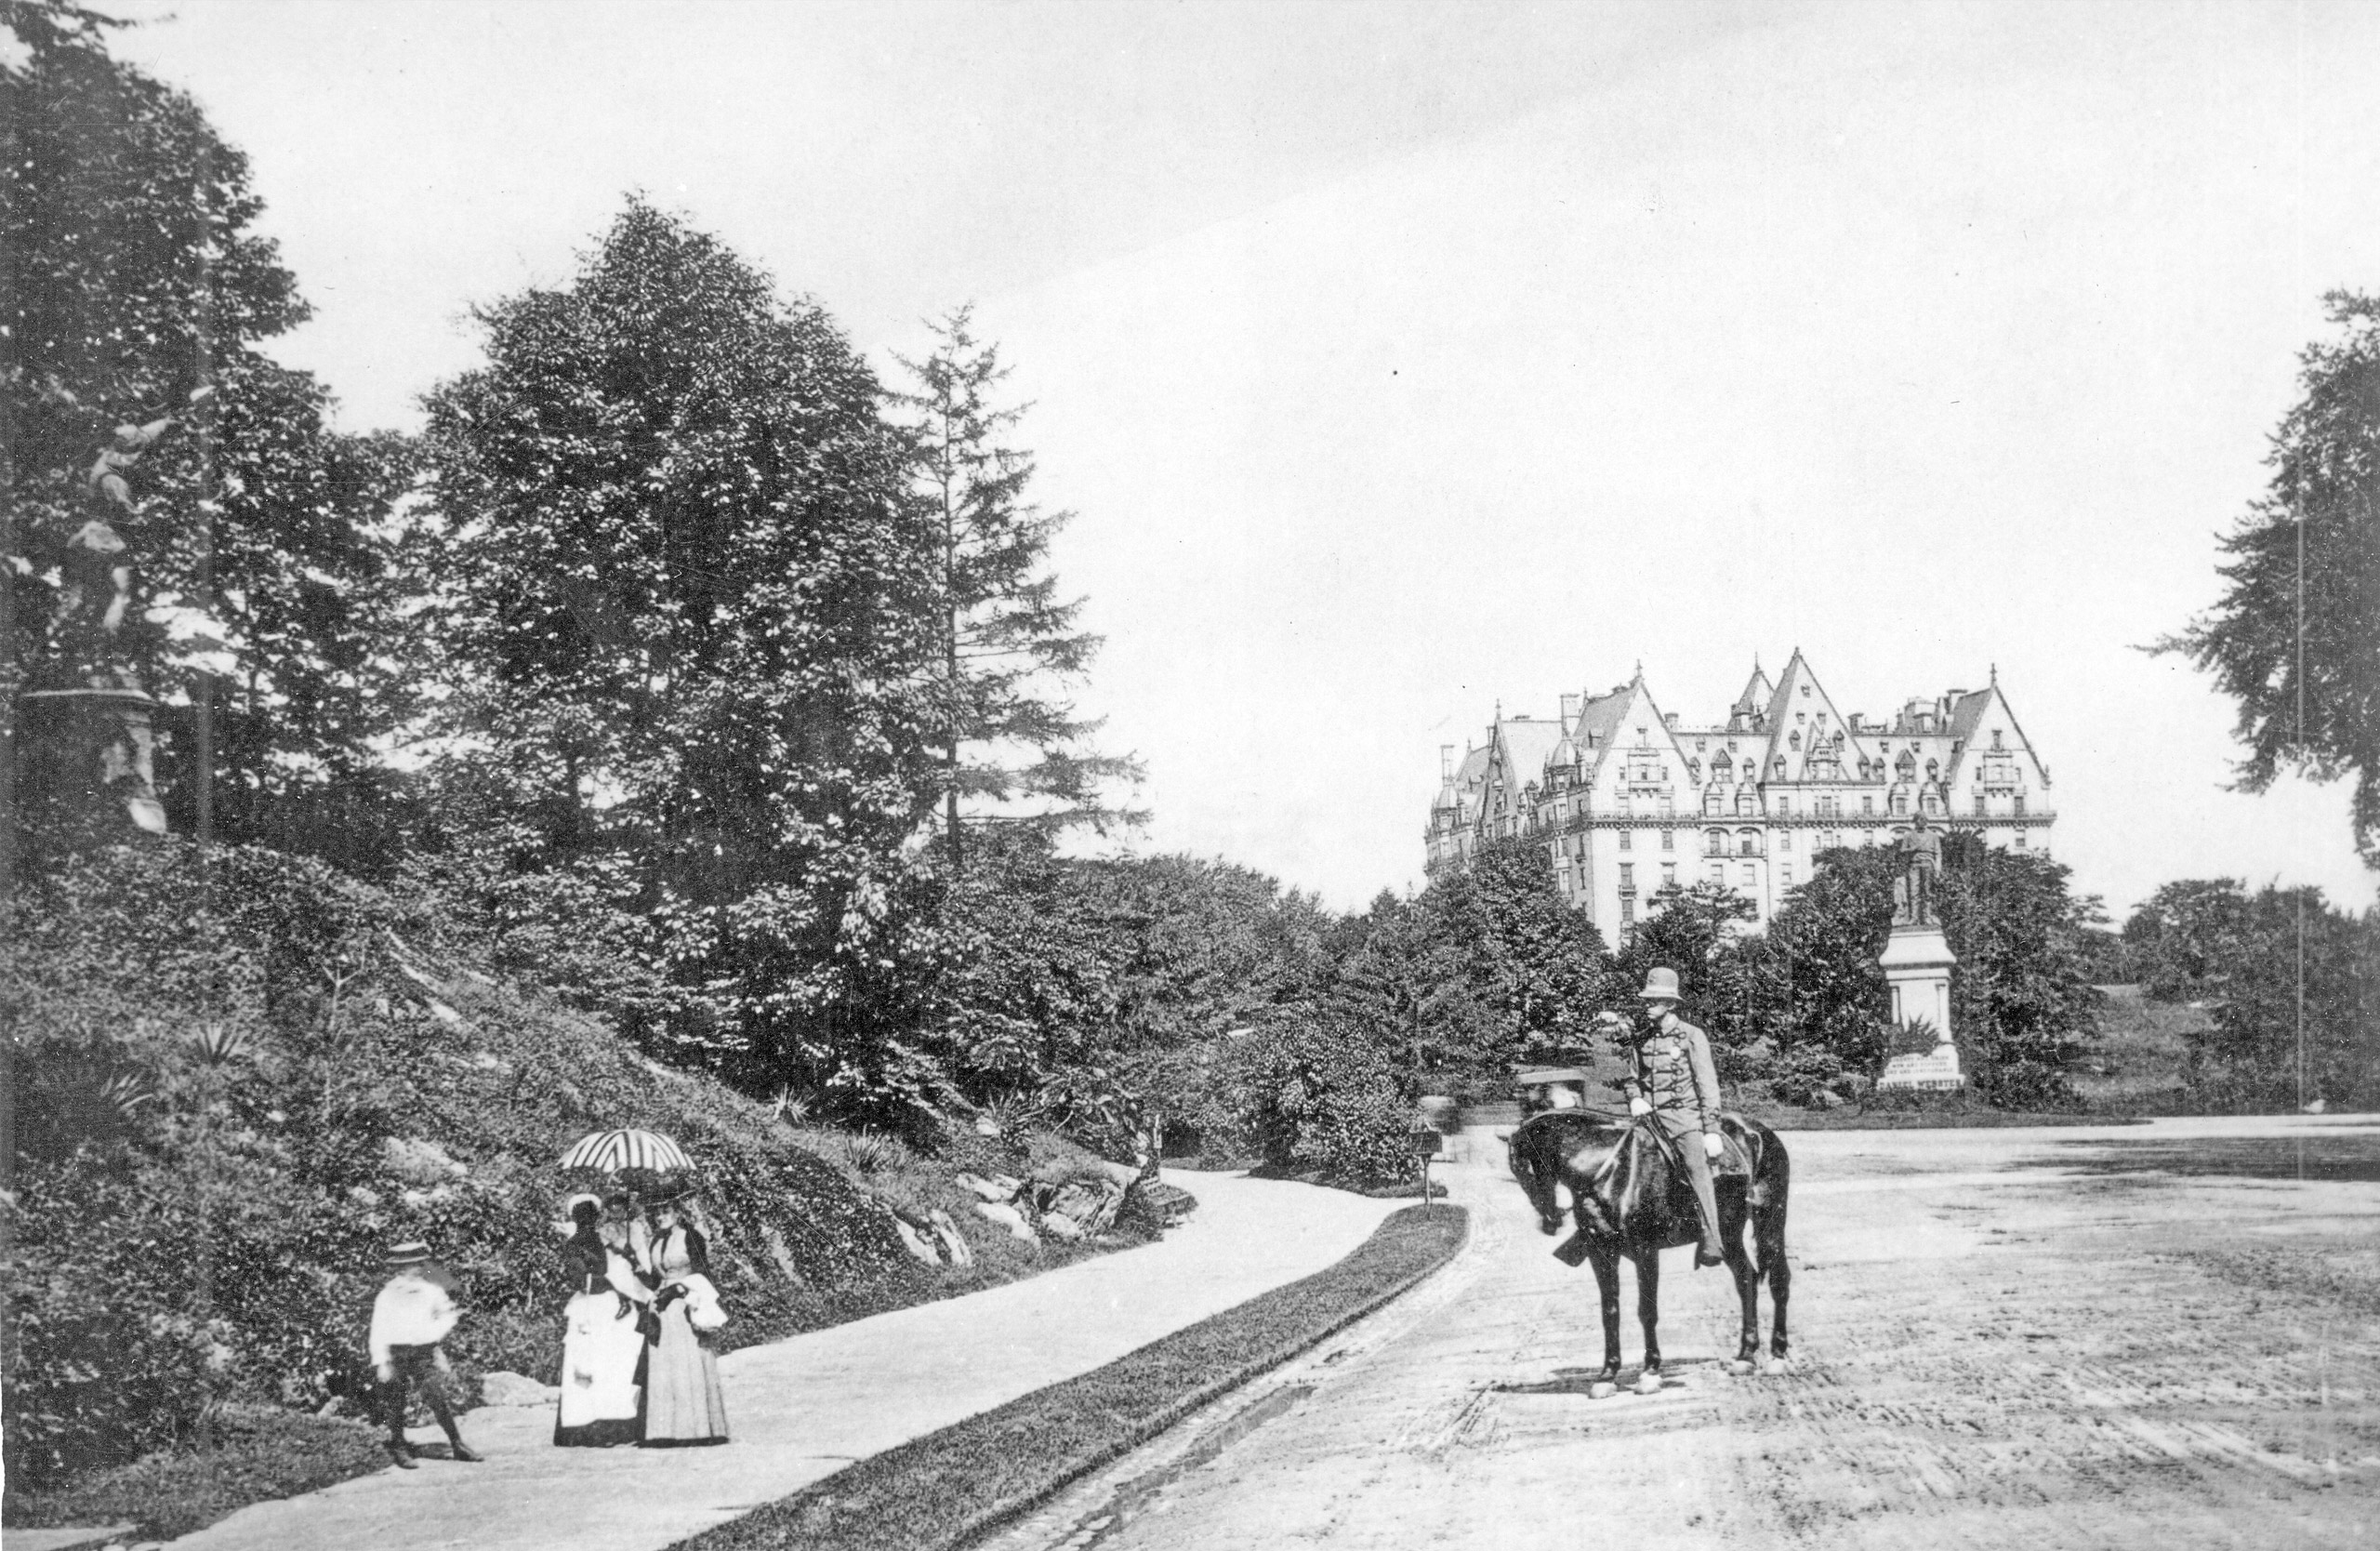 Prior to 1891 when the Hotel Majestic was begun across the street. The statue of Daniel Webster that can be seen in the photo is still there in Central Park today.